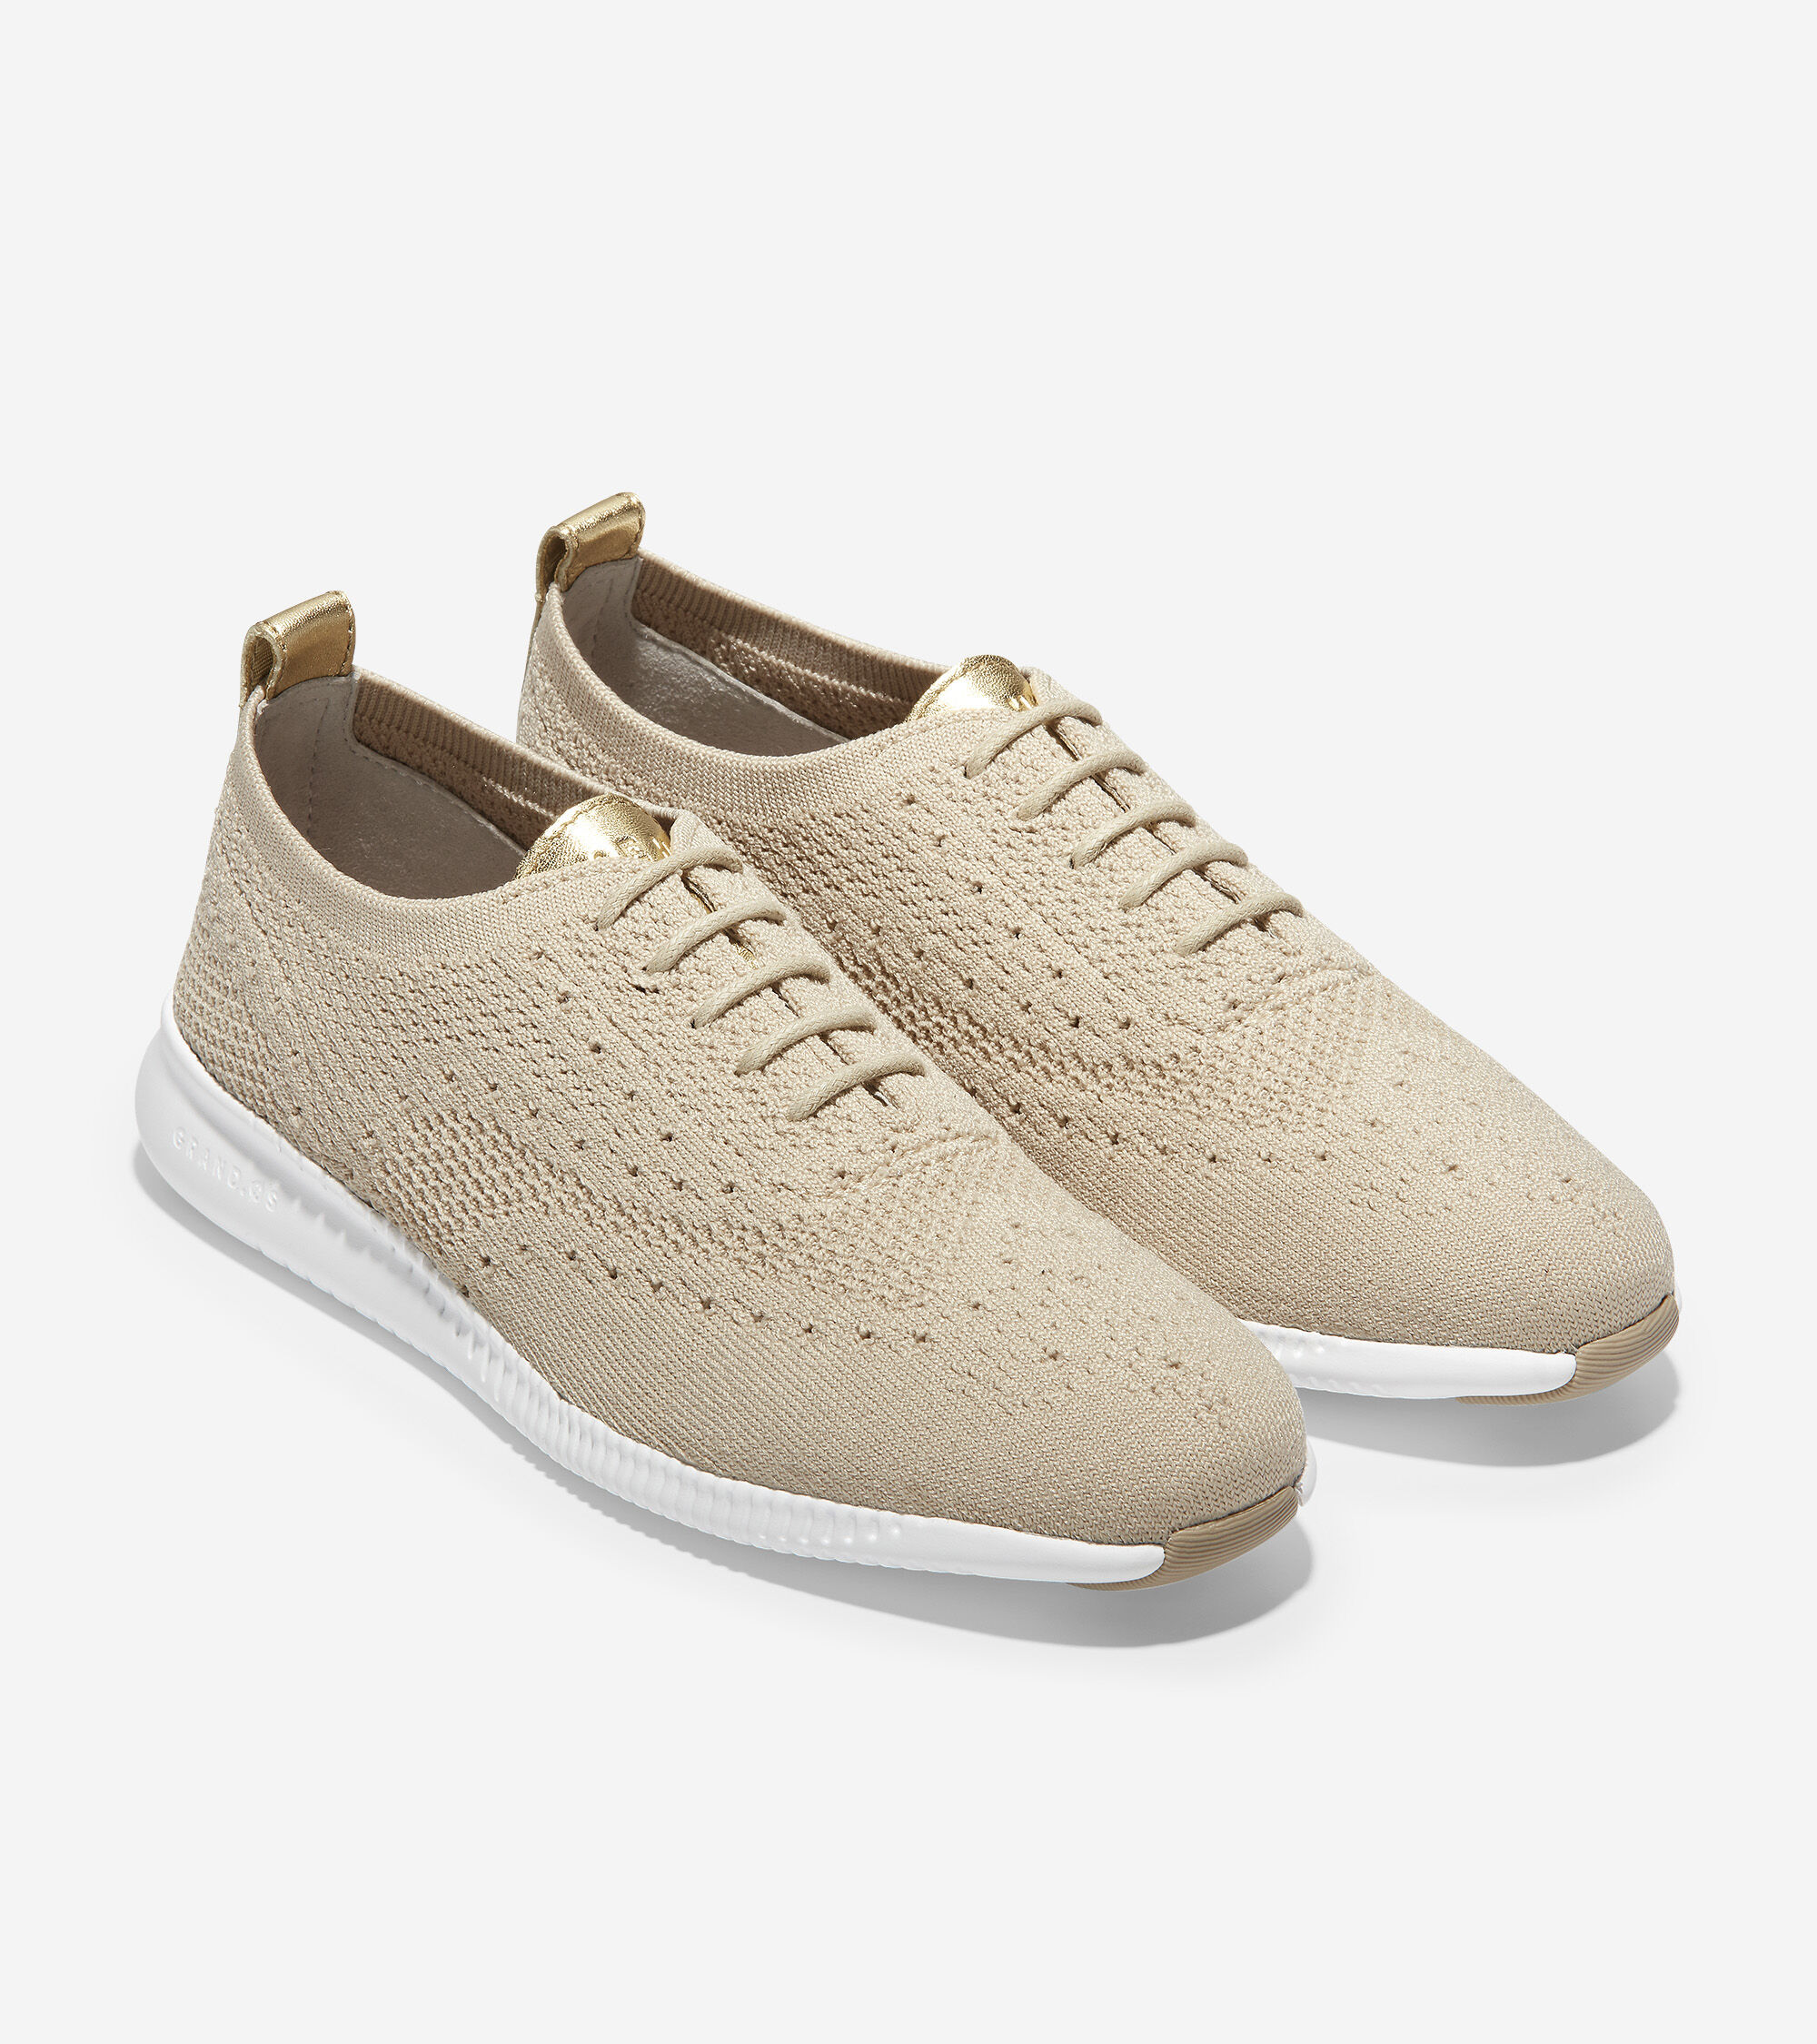 ZERØGRAND Oxford with Stitchlite™ · Women's 2.ZERØGRAND Oxford with  Stitchlite™ ...